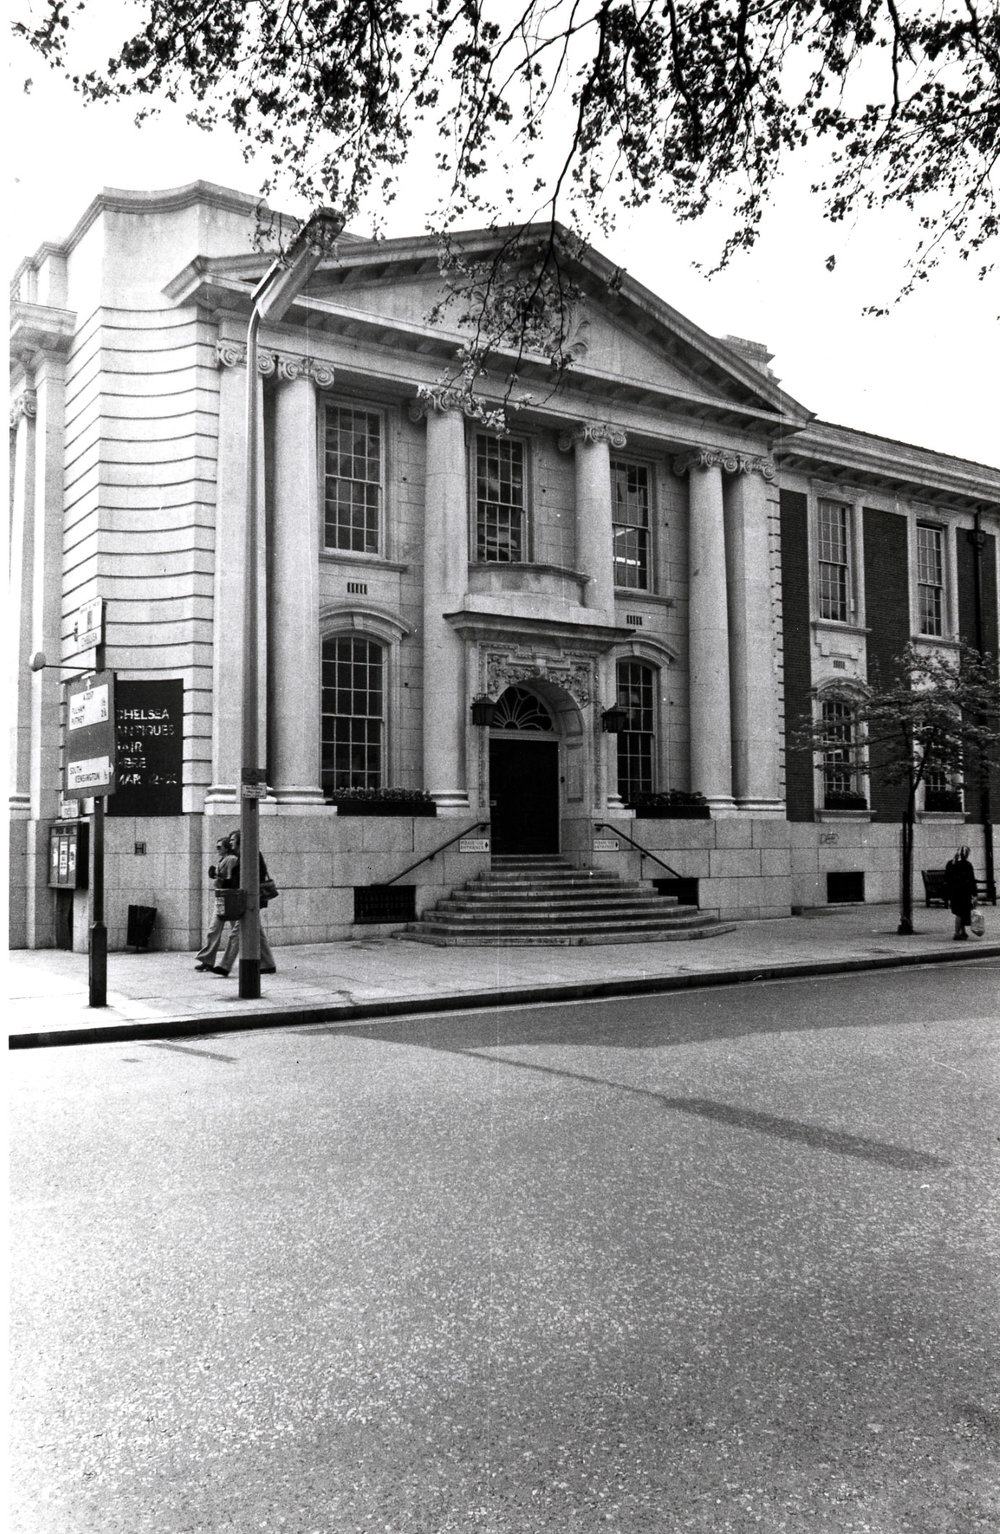 Kings Road - south side, east entrance of Chelsea Old Town Hall 1974 KS 4453.JPG